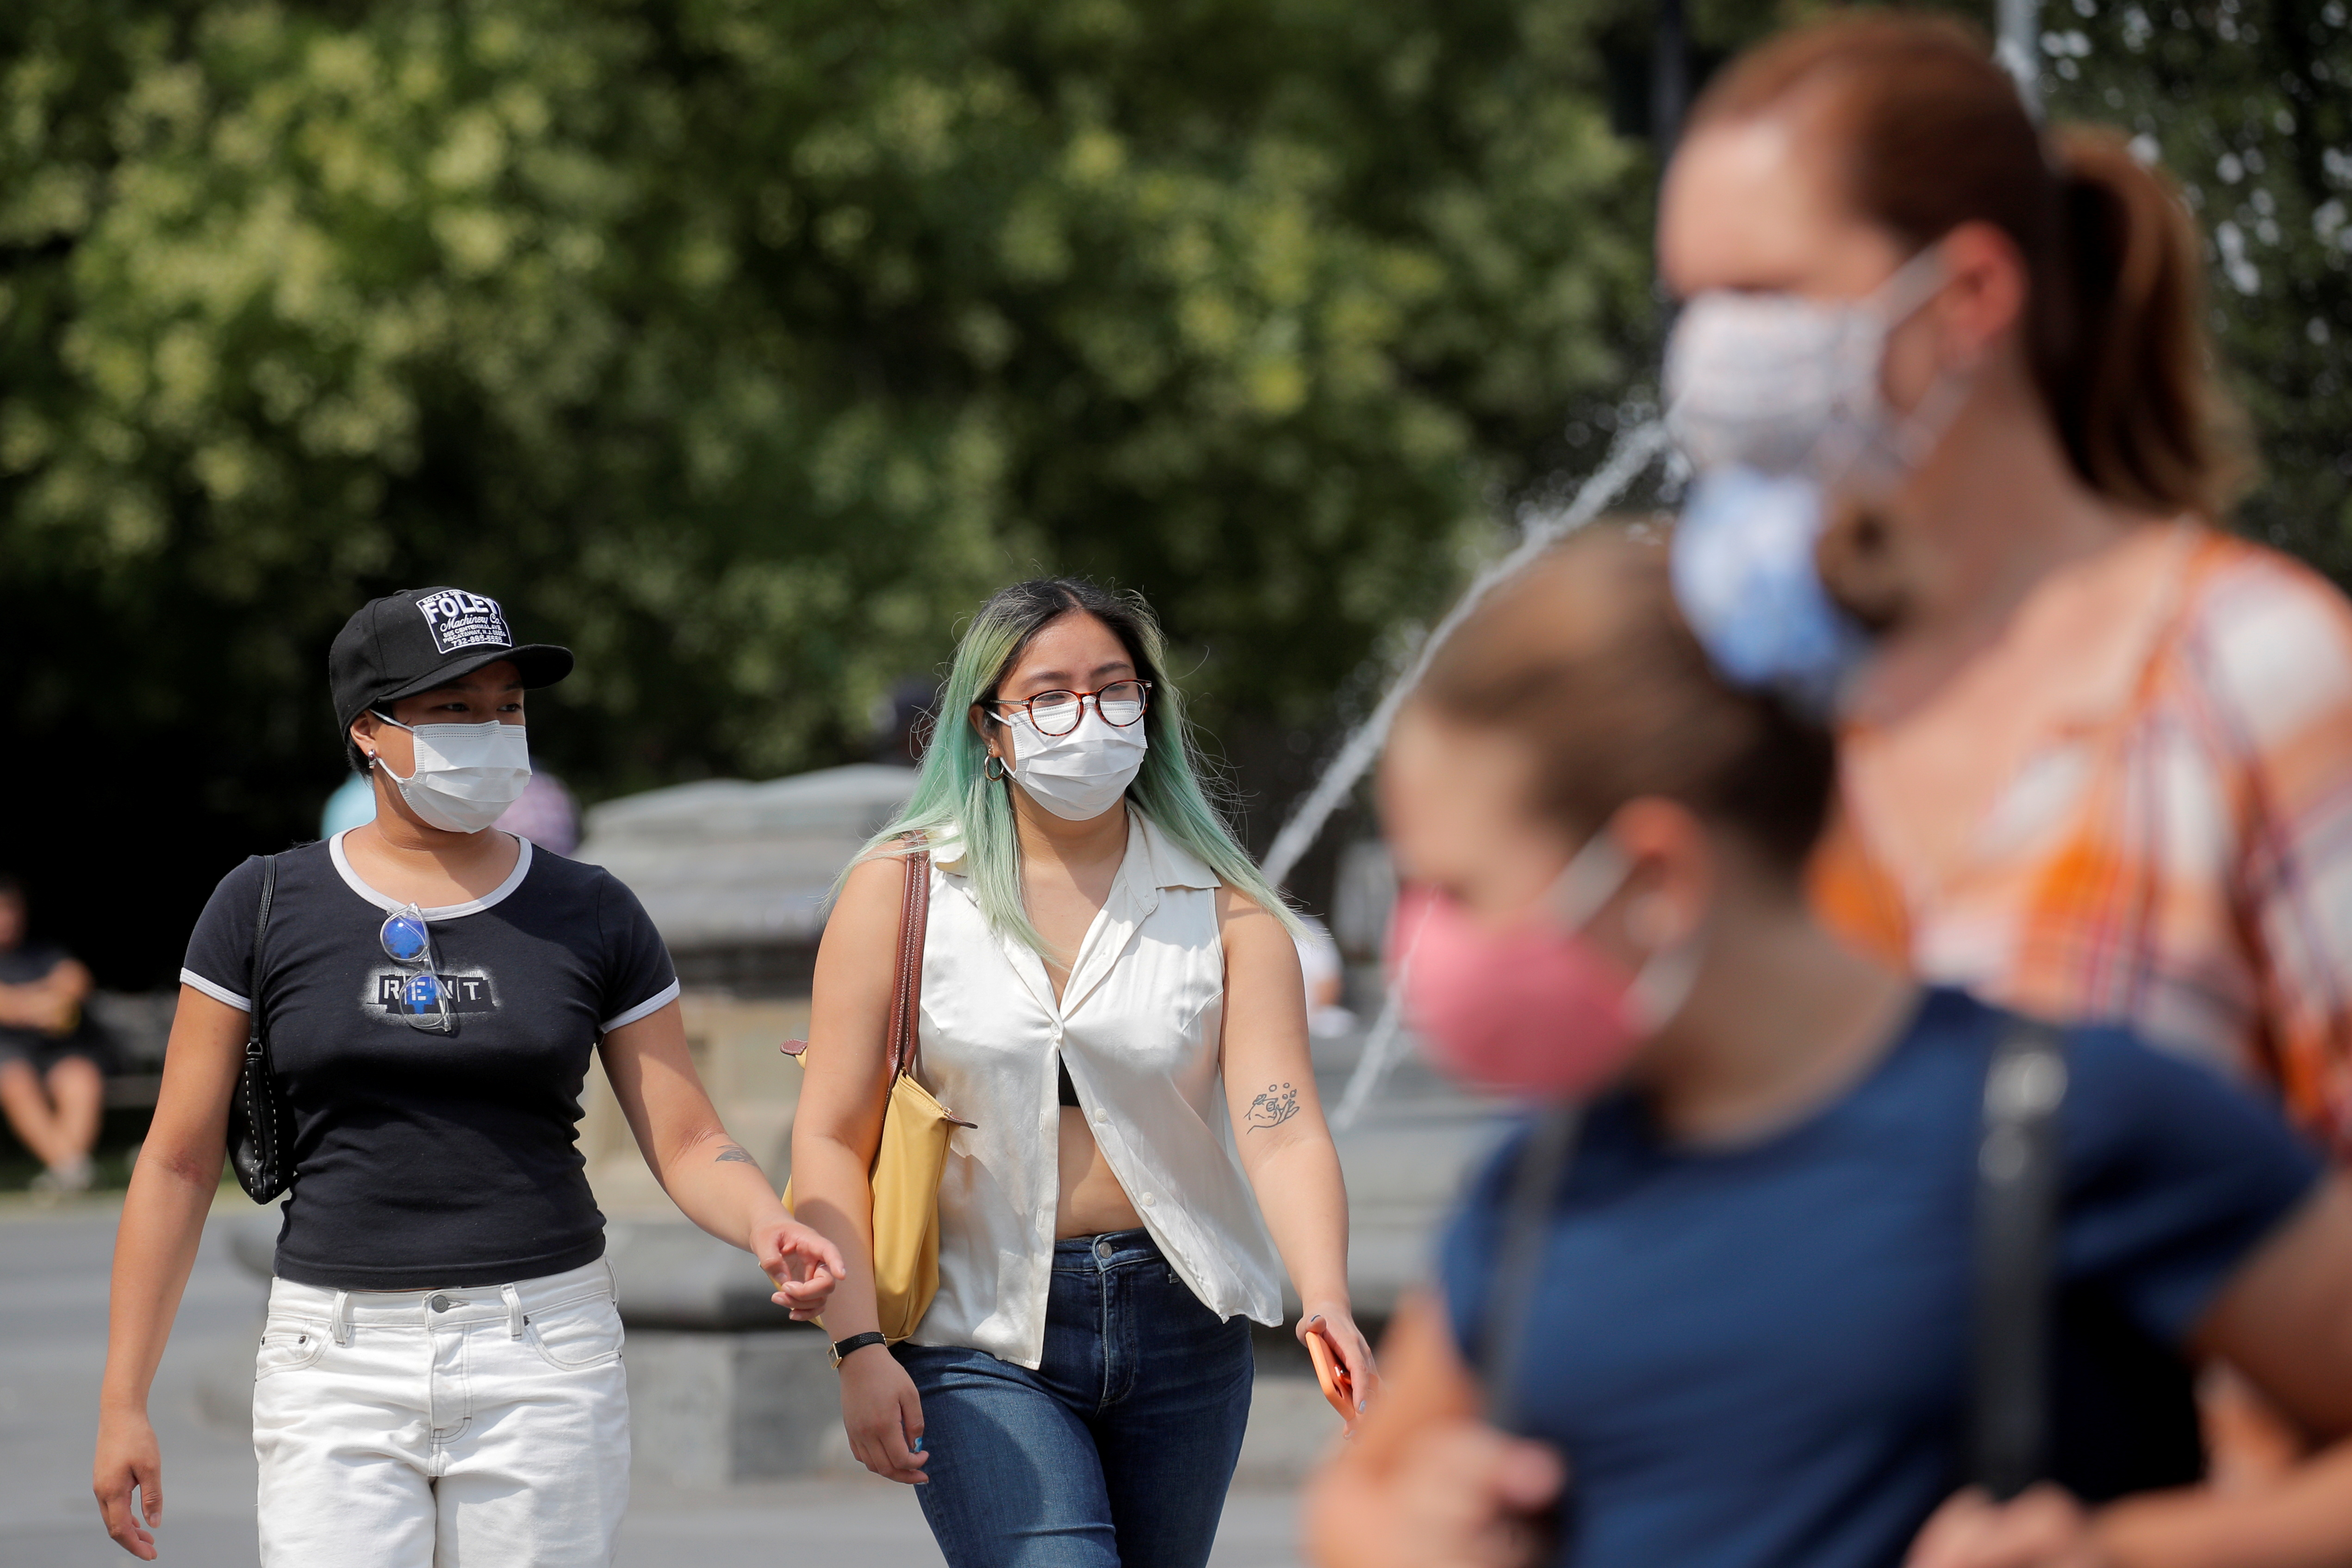 People wear masks, as cases of the infectious Delta variant of coronavirus disease (COVID-19) continue to rise, in Washington Square Park in New York City, U.S., July 22, 2021.  REUTERS/Brendan McDermid/File Photo